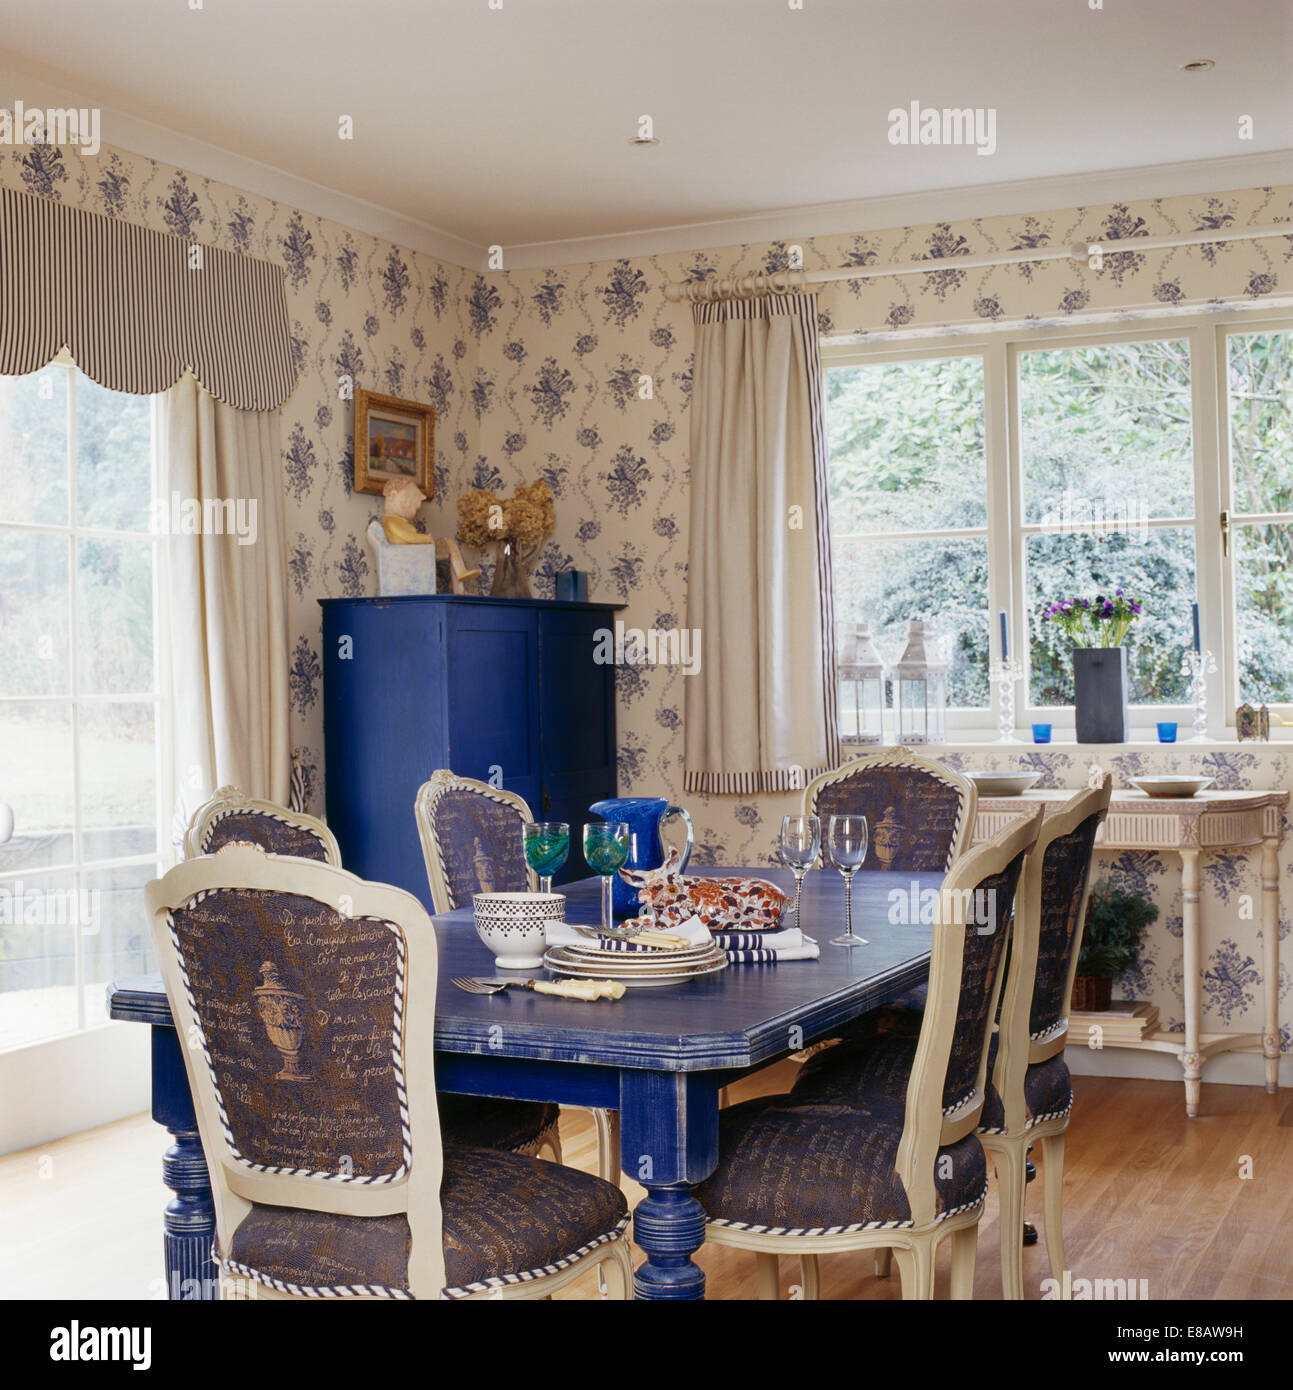 Upholstered White Chairs And Painted Blue Table In Country Dining Room With  Blue+white Patterned Wallpaper